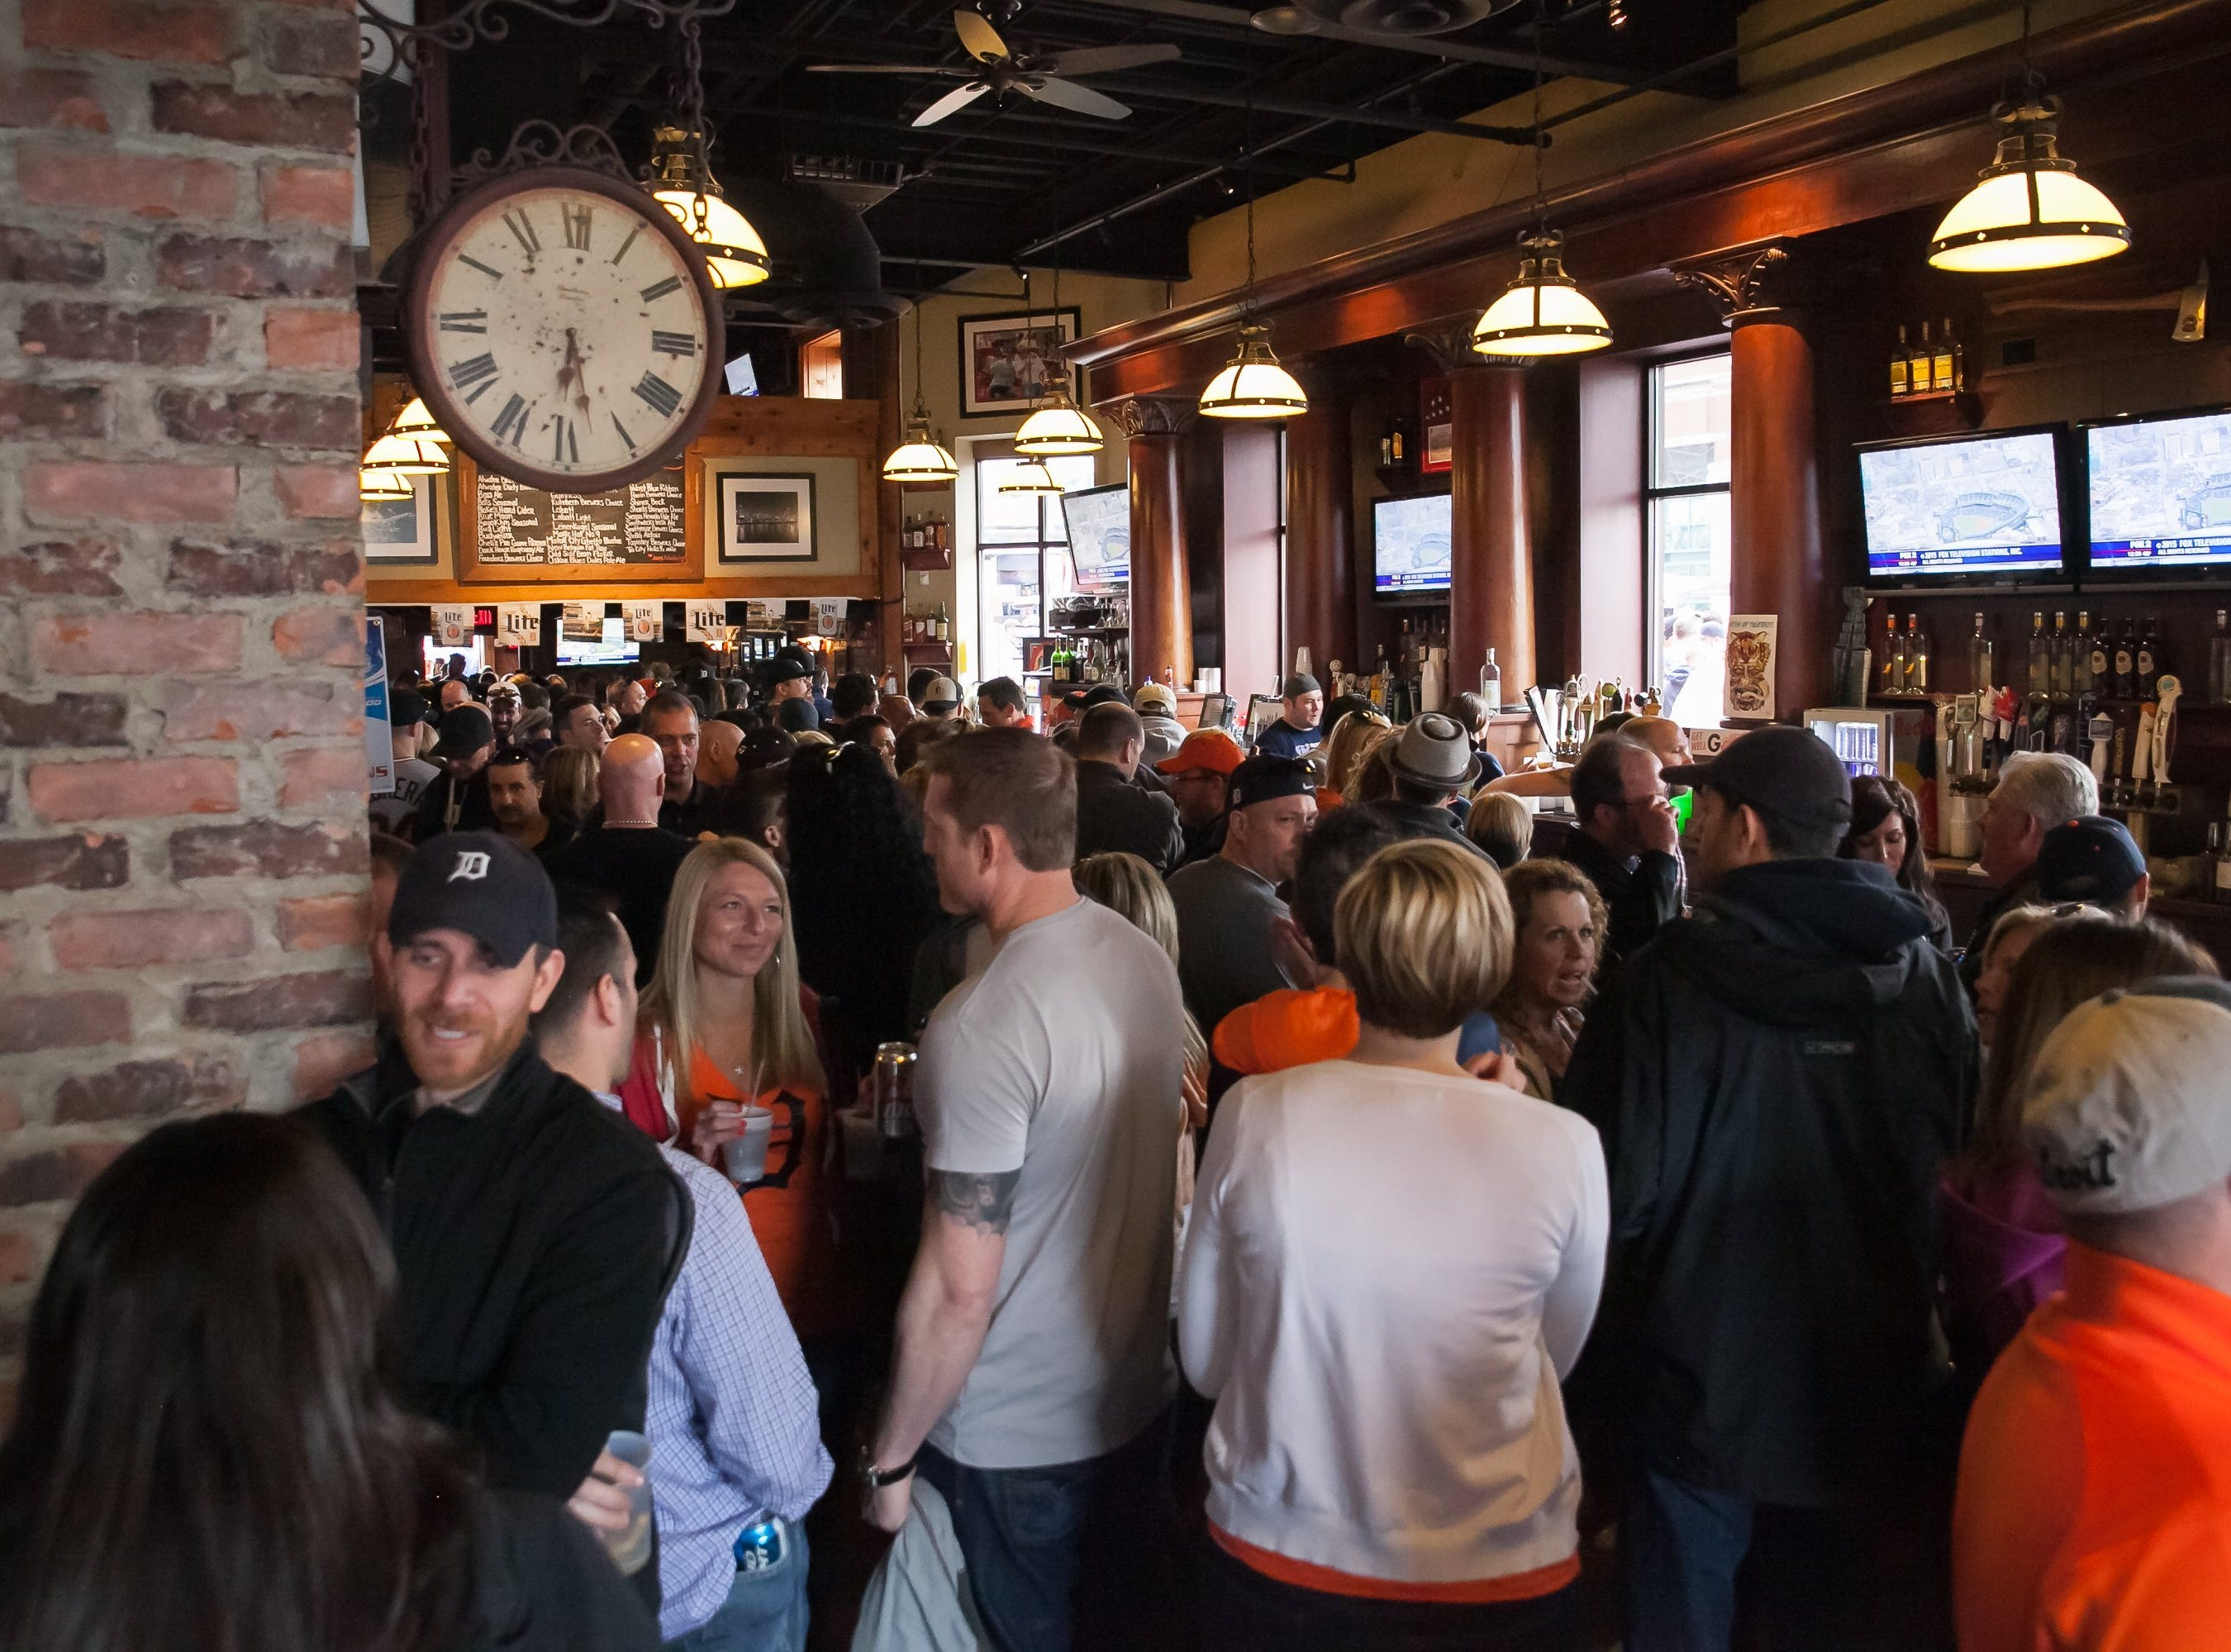 The first floor of Cheli's Chili Bar was full of Tigers fans moments before the first pitch during Opening Day festivities in downtown Detroit on April 06, 2015.